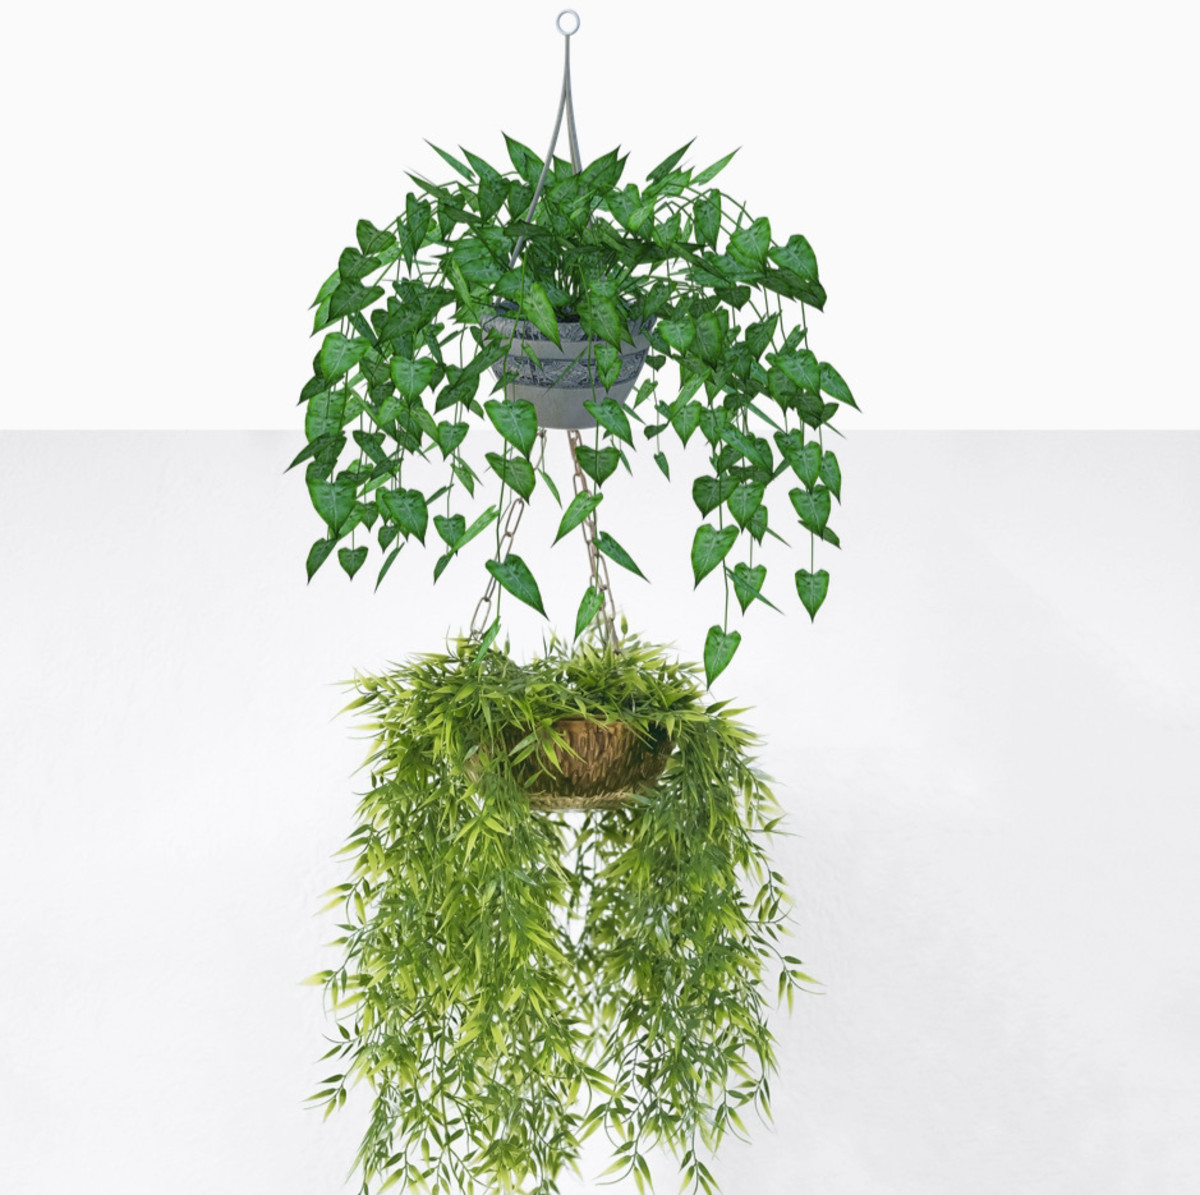 You can create plant tiers several ways: by hooking one plant under another, by putting potted plants into a tiered fruit basket, or by making a macrame hanger with containers for more than one plant.